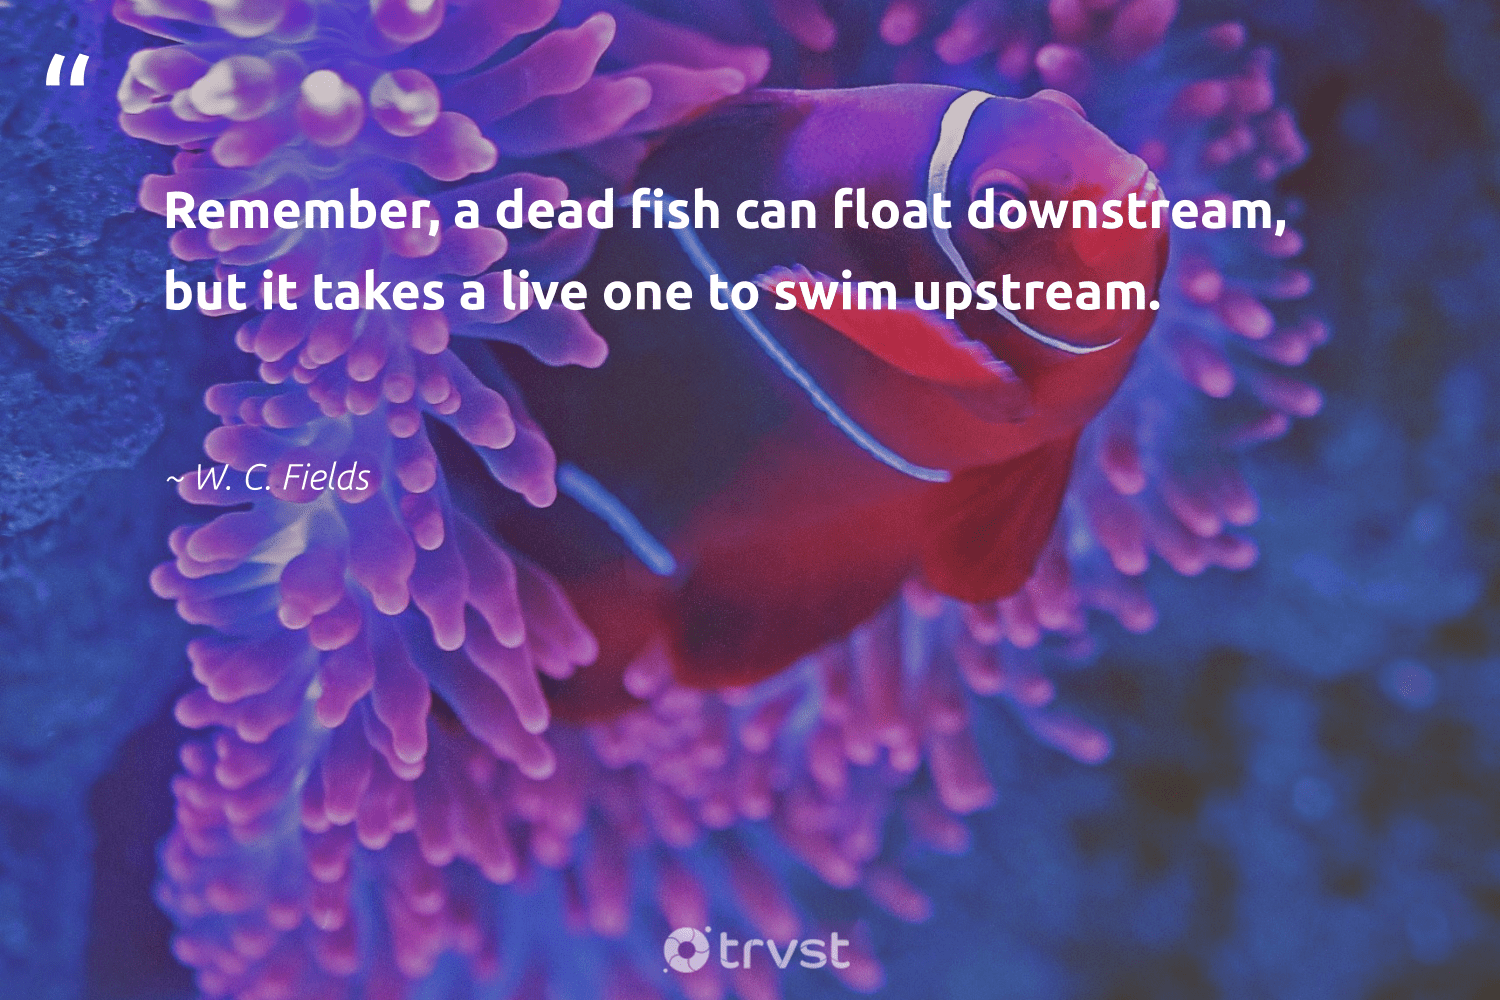 """""""Remember, a dead fish can float downstream, but it takes a live one to swim upstream.""""  - W. C. Fields #trvst #quotes #fish #wildlifeprotection #socialimpact #perfectnature #collectiveaction #oceanconservation #socialchange #conservation #dogood #oceanlove"""